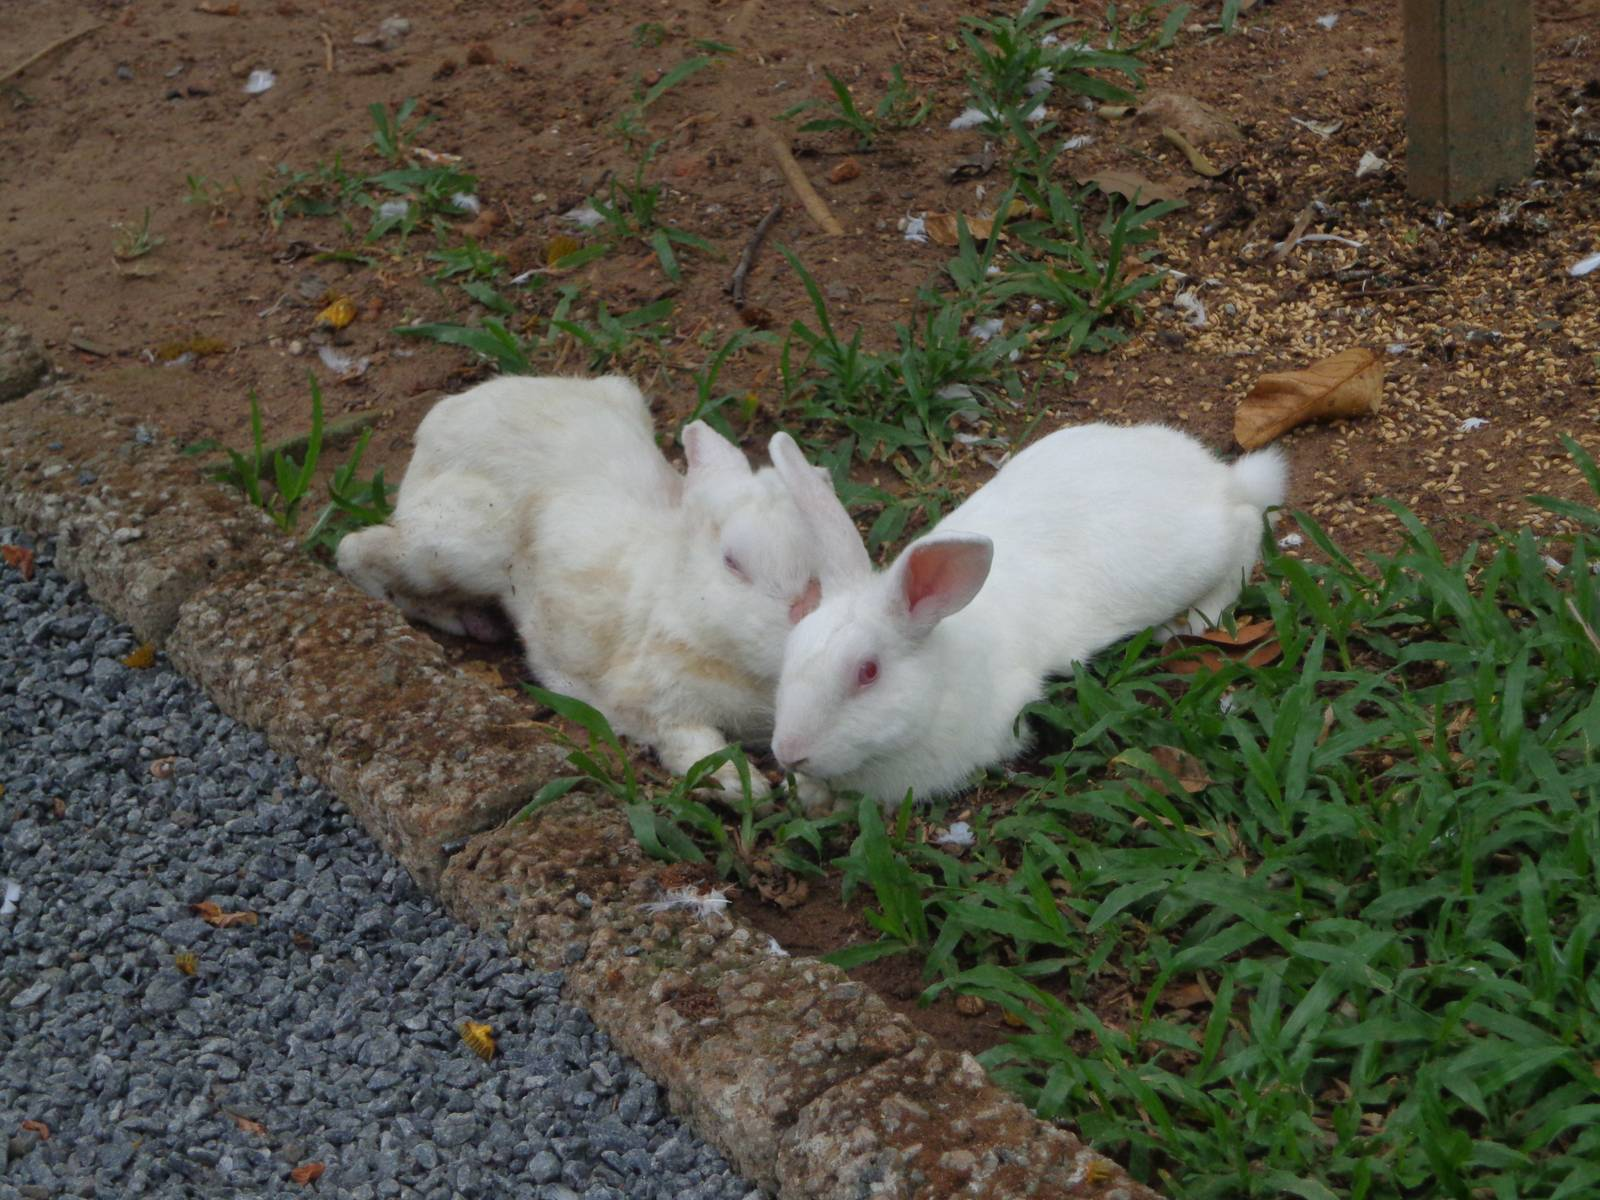 These rabbits were let loose. They are put back inside cages at the end of the day for their own safety.